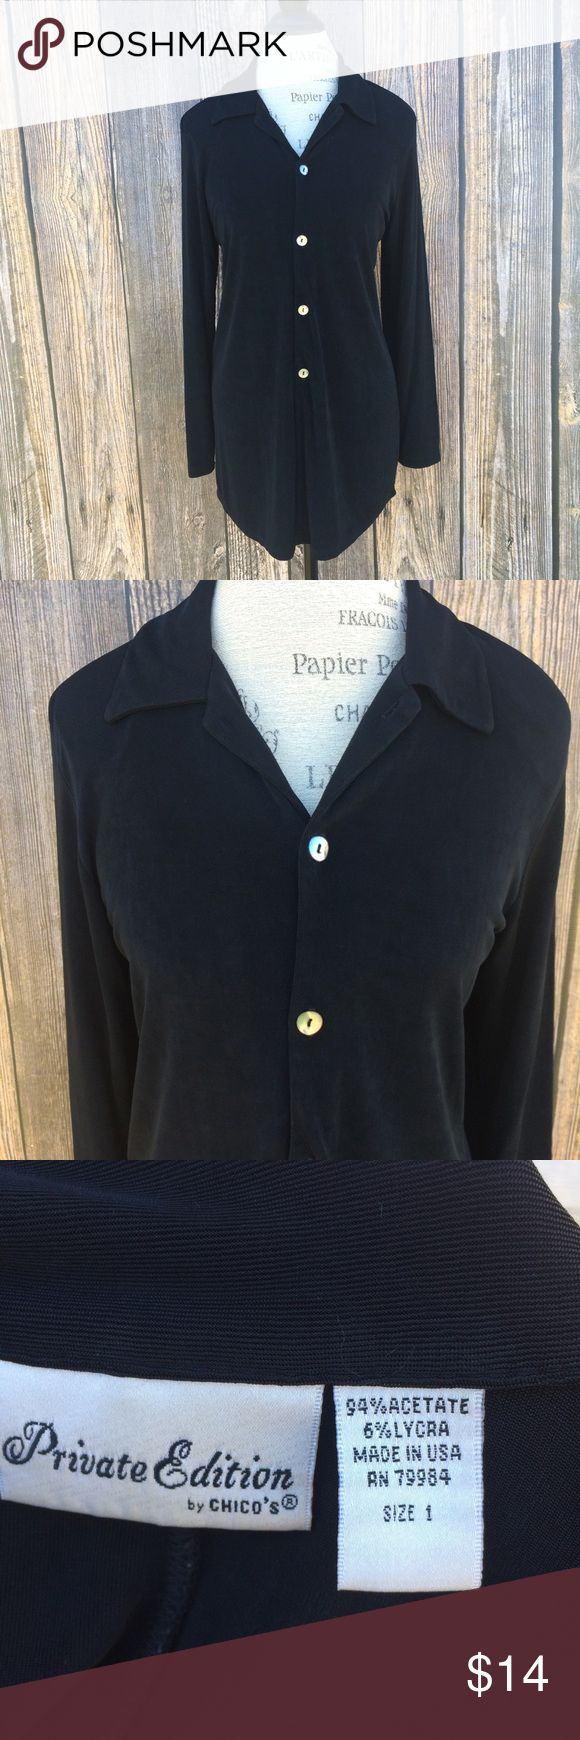 """Chico's Private Edition wrinkle free top / tunic Chico's Private Edition wrinkle free button up top / tunic. Perfect for traveling. According to Chico's chart this would be a size small (8-10)  🌺 Bundle deals offered. Check out my closet for a variety of sizes/brands 🌺 No trades, holds or modeling 🌺 All reasonable offers accepted only through the """"offer"""" button. Please no lowball offers. Please submit offer you are willing to pay, as I prefer not to counteroffer.  🌺 God Bless Chico's…"""